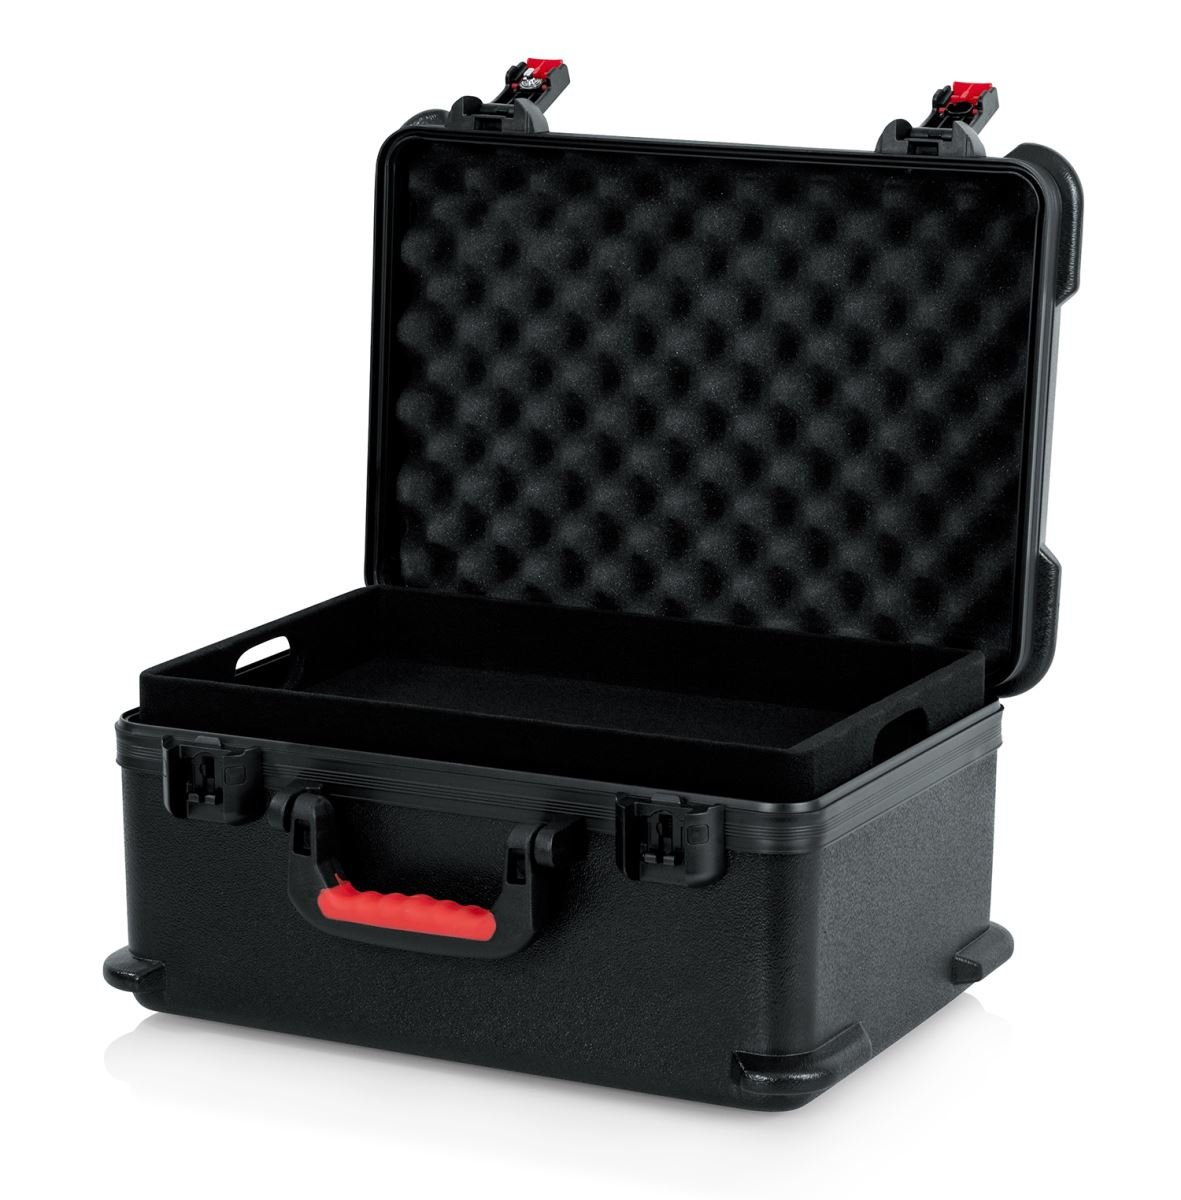 TSA Series ATA Case for (7) Wireless Microphones and Accessories